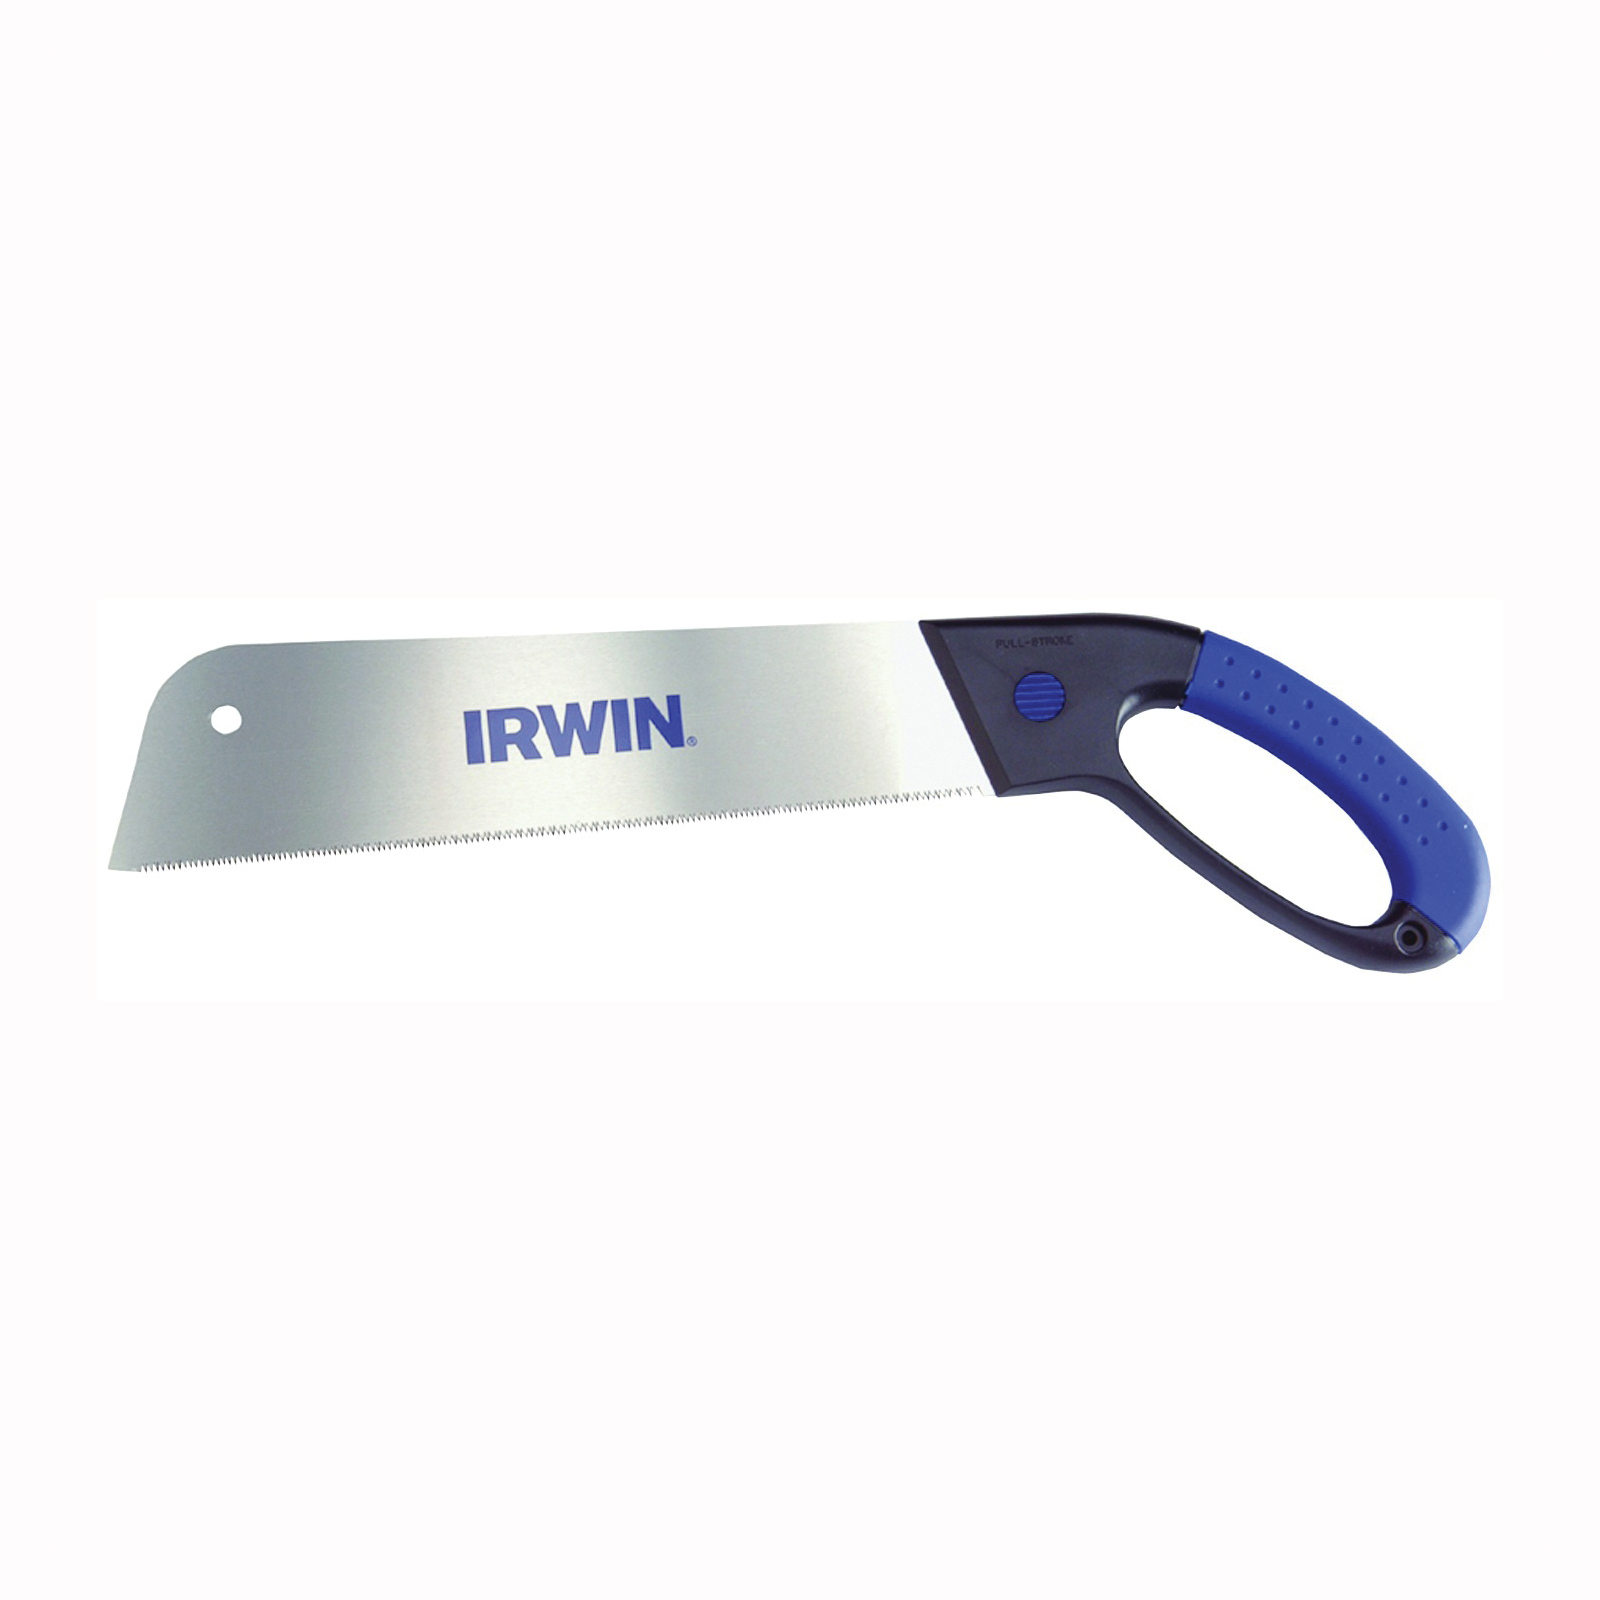 Picture of IRWIN 213101 General Carpentry Saw, 12 in L Blade, 14 TPI, ProTouch Grip Handle, Polymer Handle